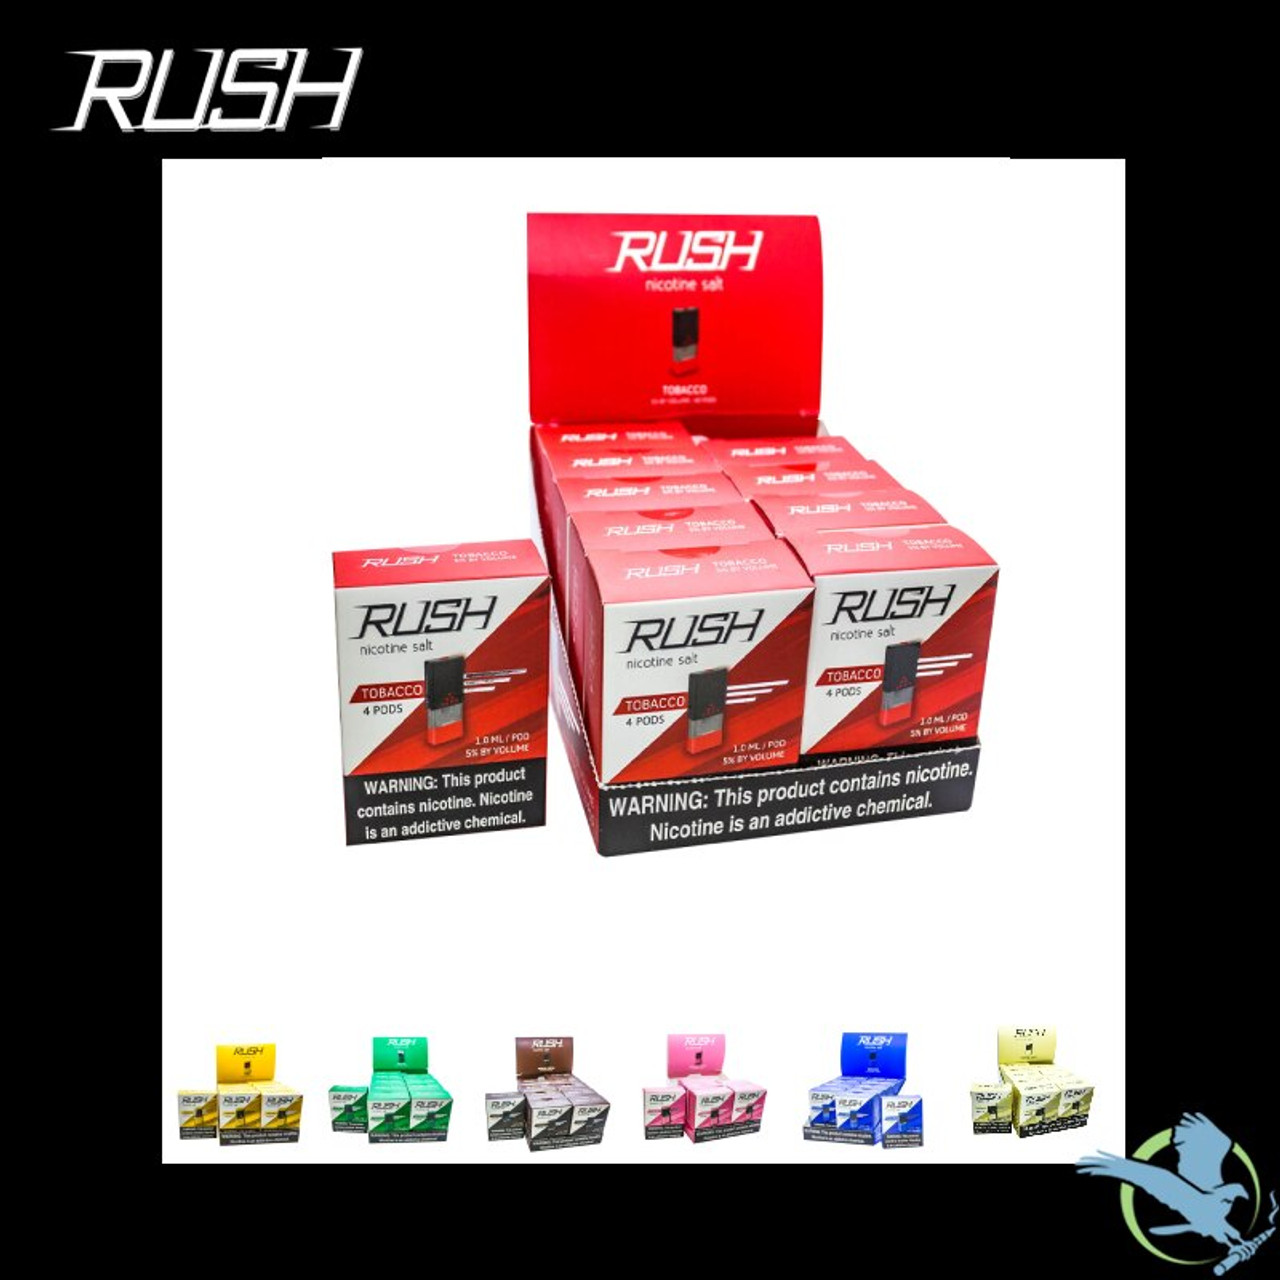 Rush Replacement Pods By America Juice Co  - Display Of 10 Packs *Drop  Ships* (MSRP $15 00 Each)